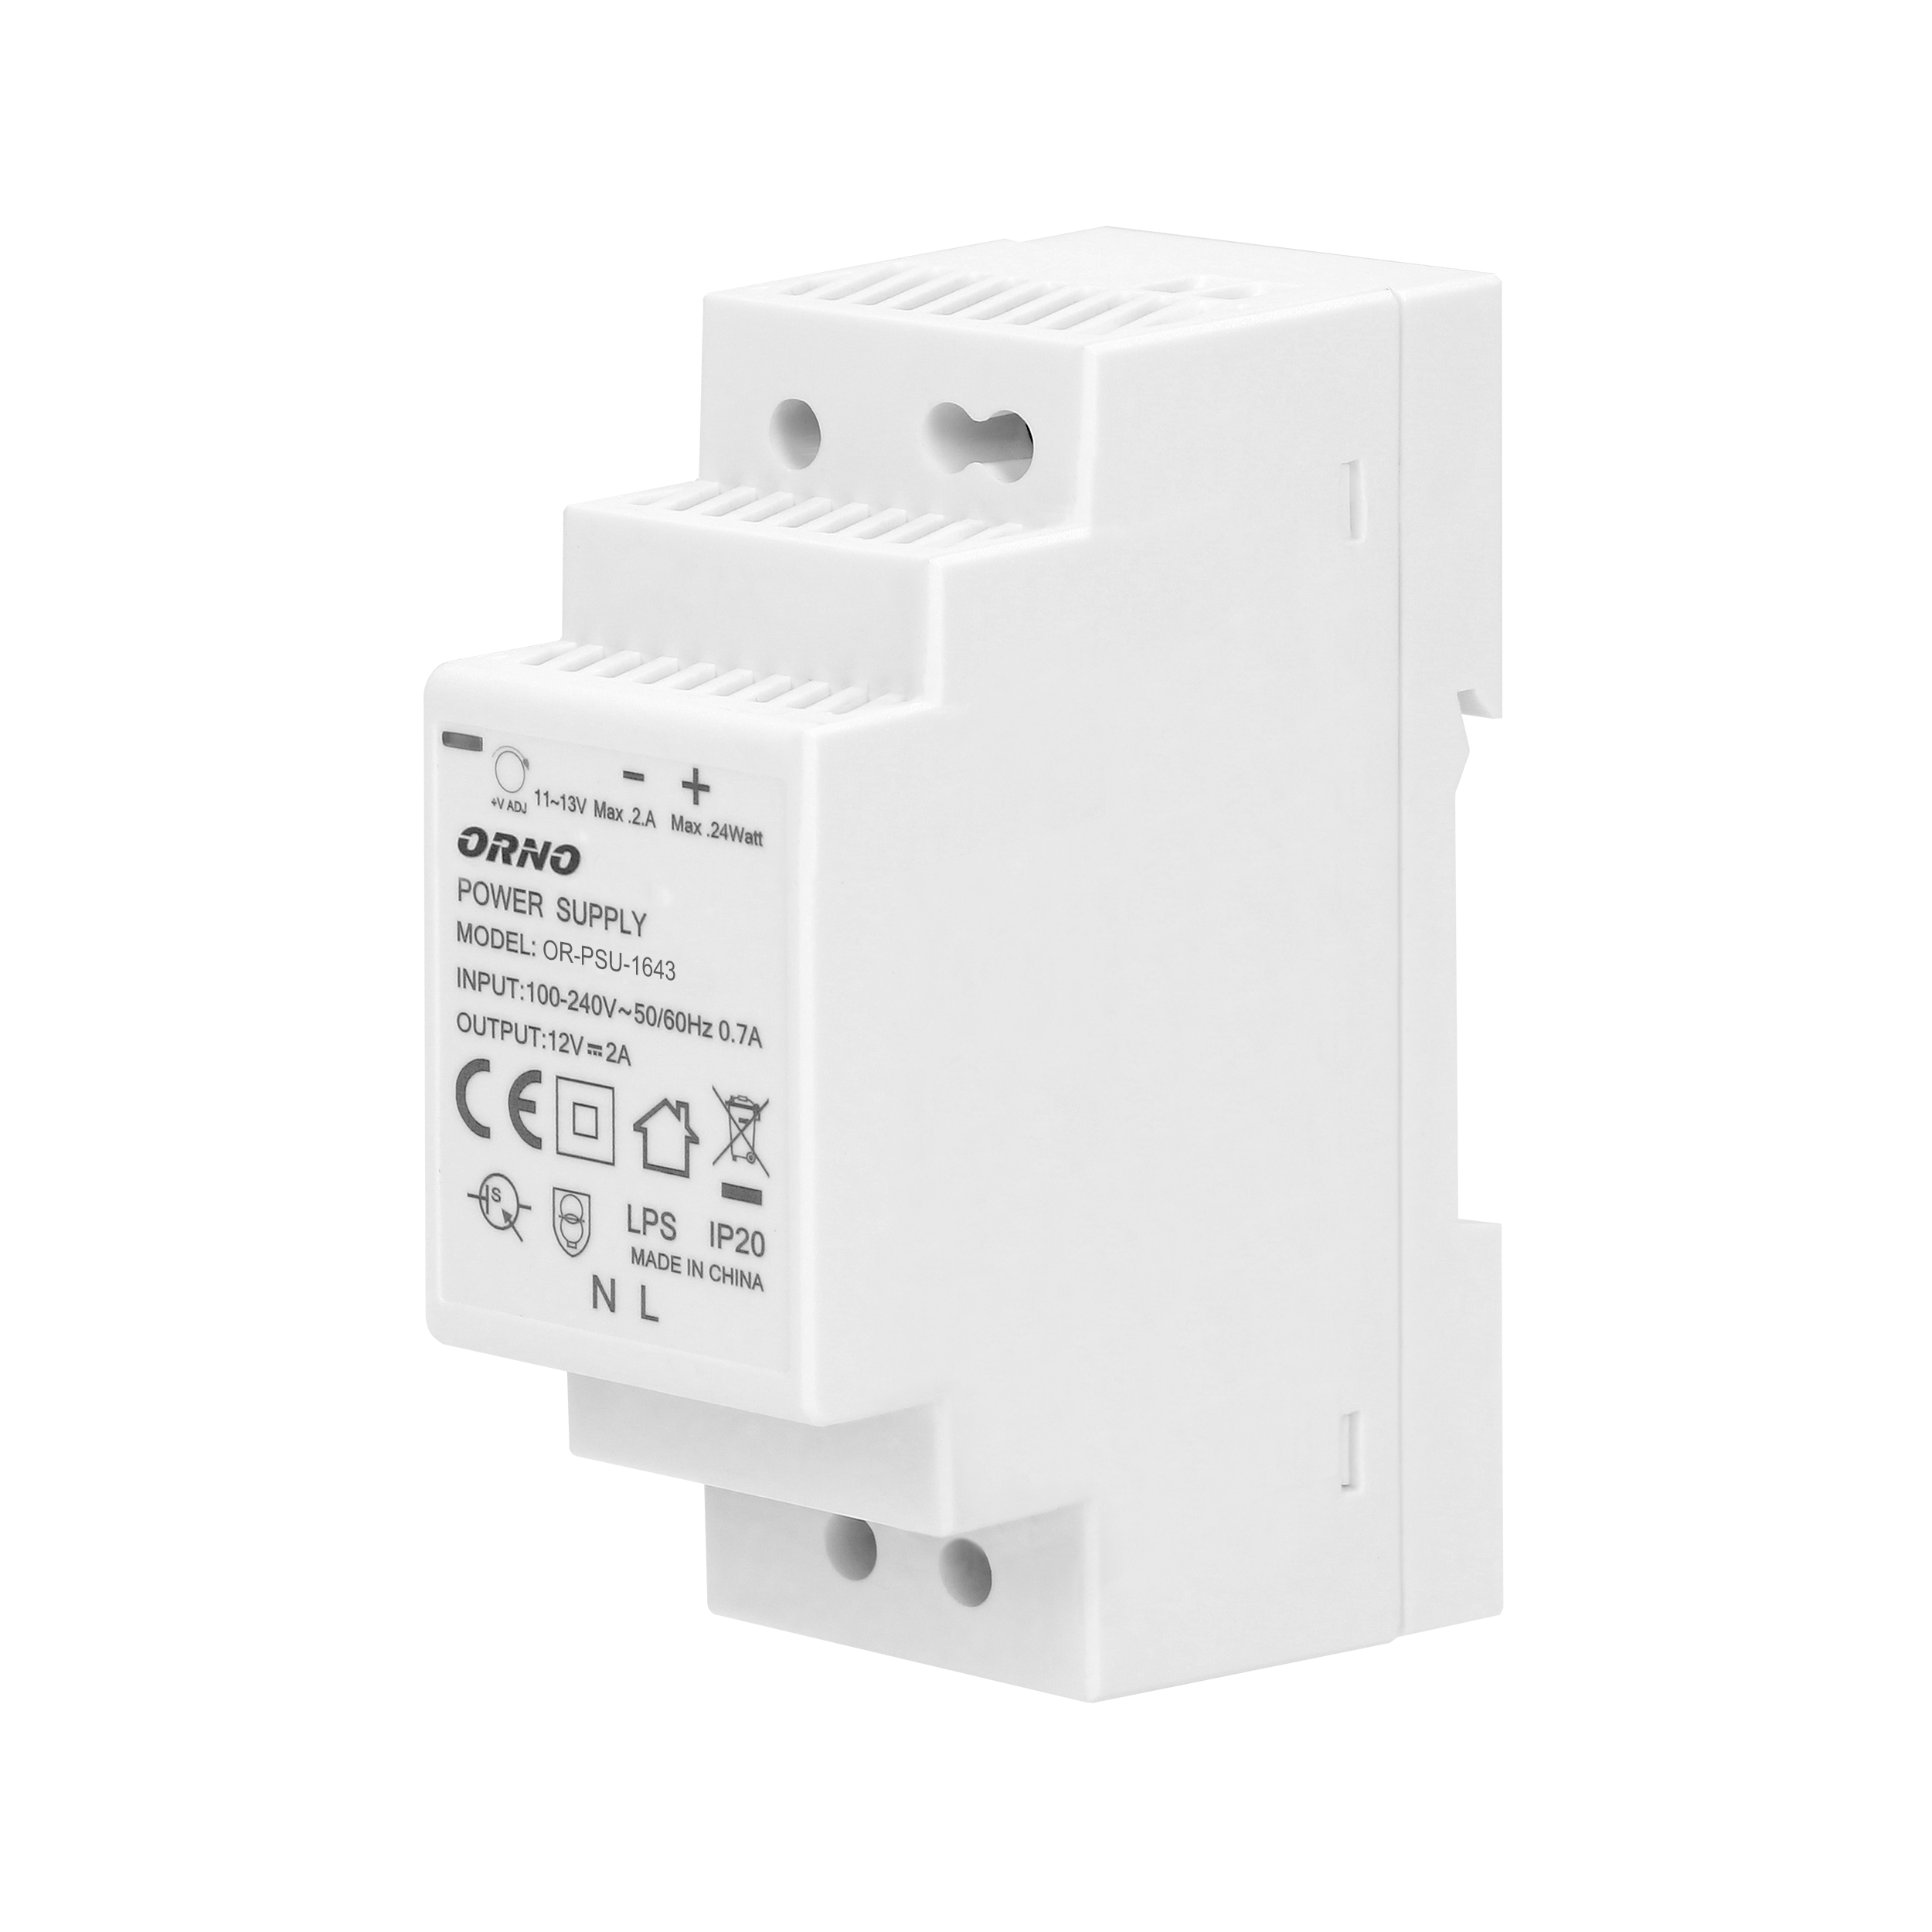 DIN rail power adaptor 12V DC 2A, 24W, width: 2 units